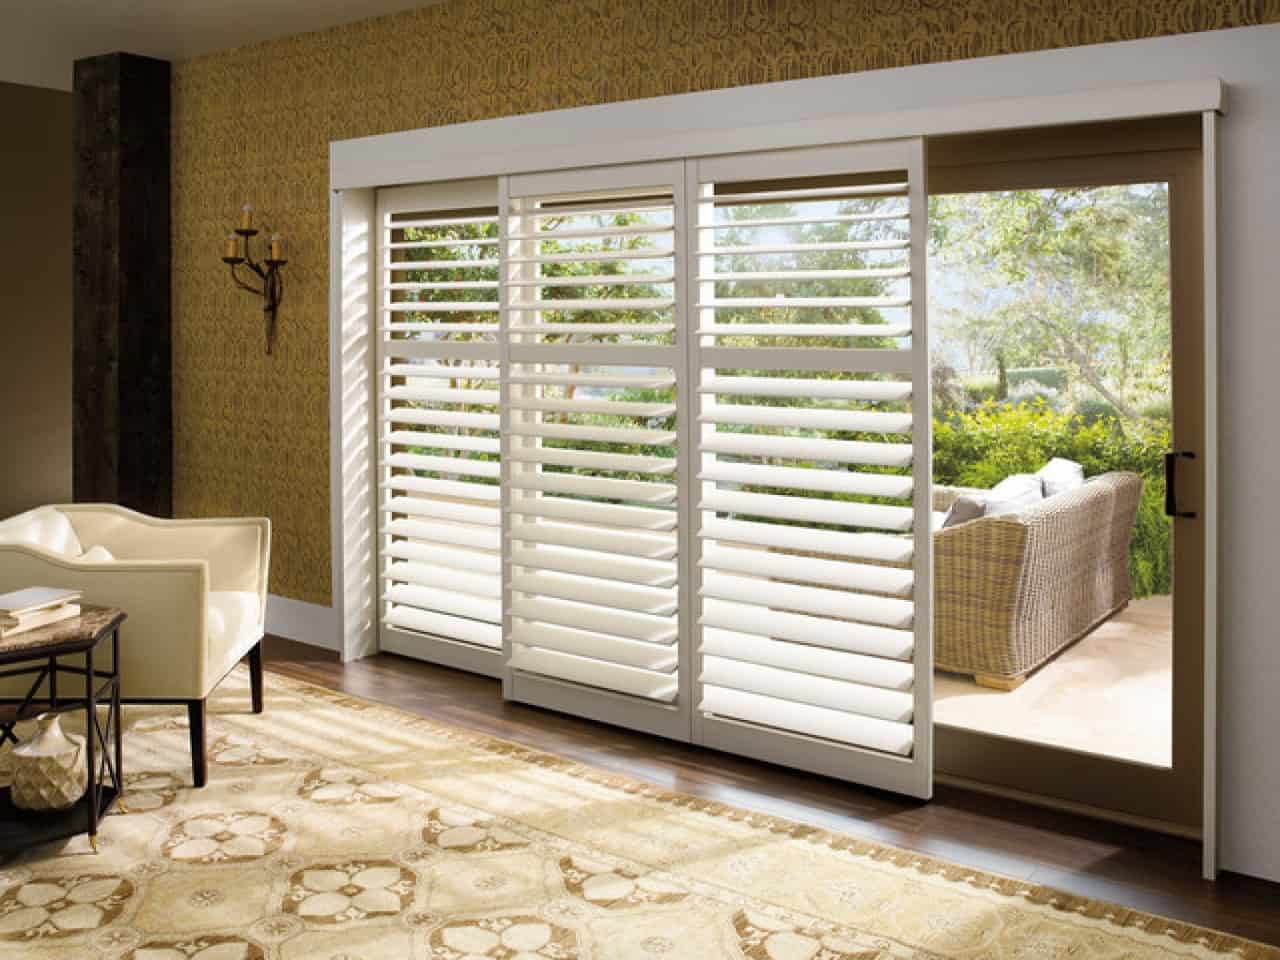 plantation shutters for sliding glass patio doors - Blinds For Sliding Glass Door